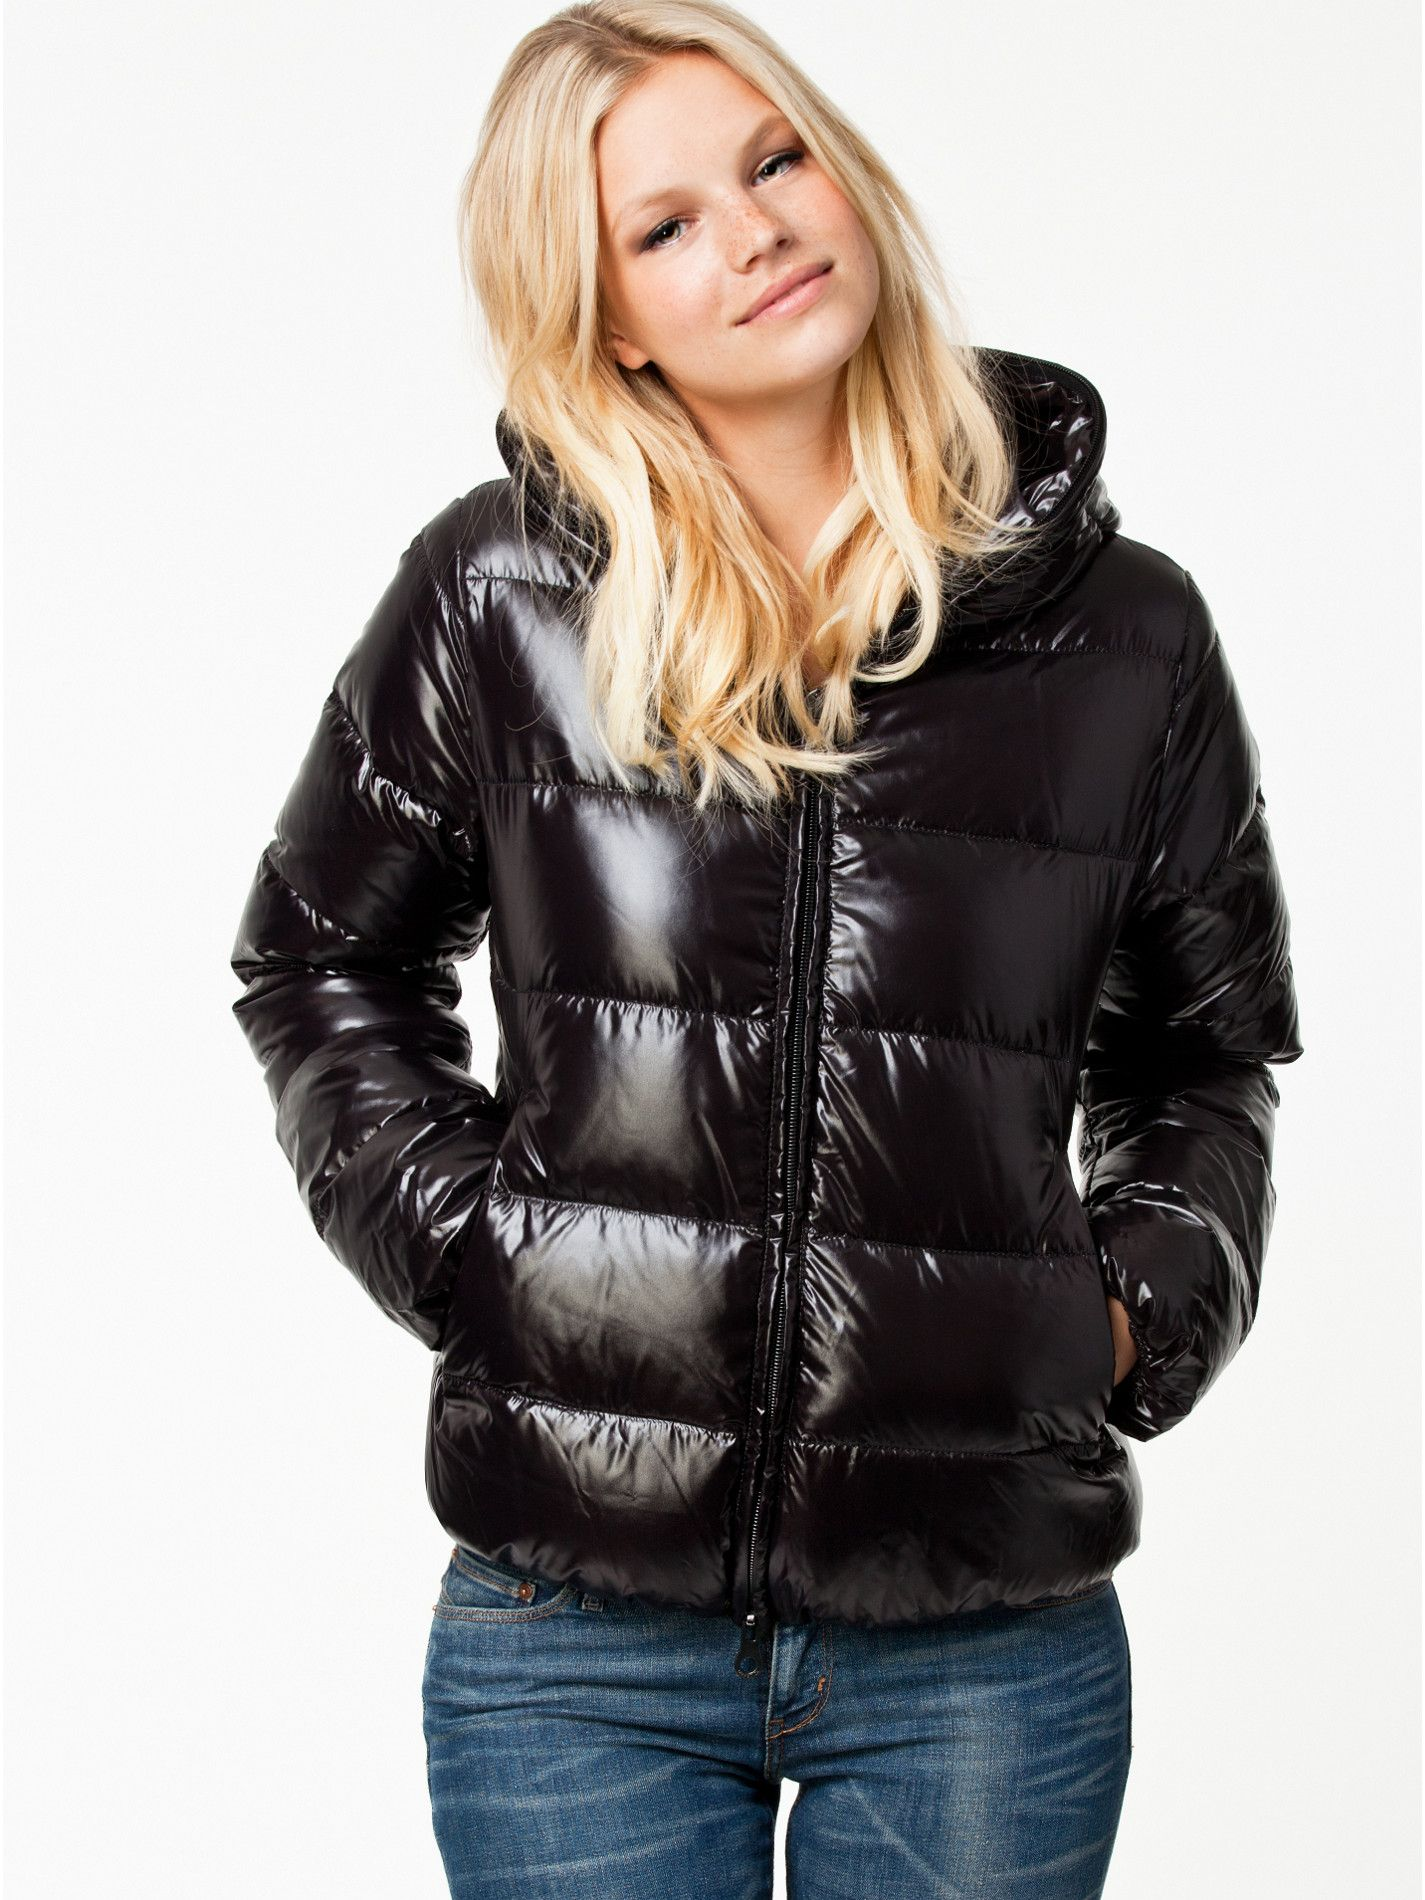 Pin by Wasatch Down on Puffy Coats | Pinterest | Black and Fashion